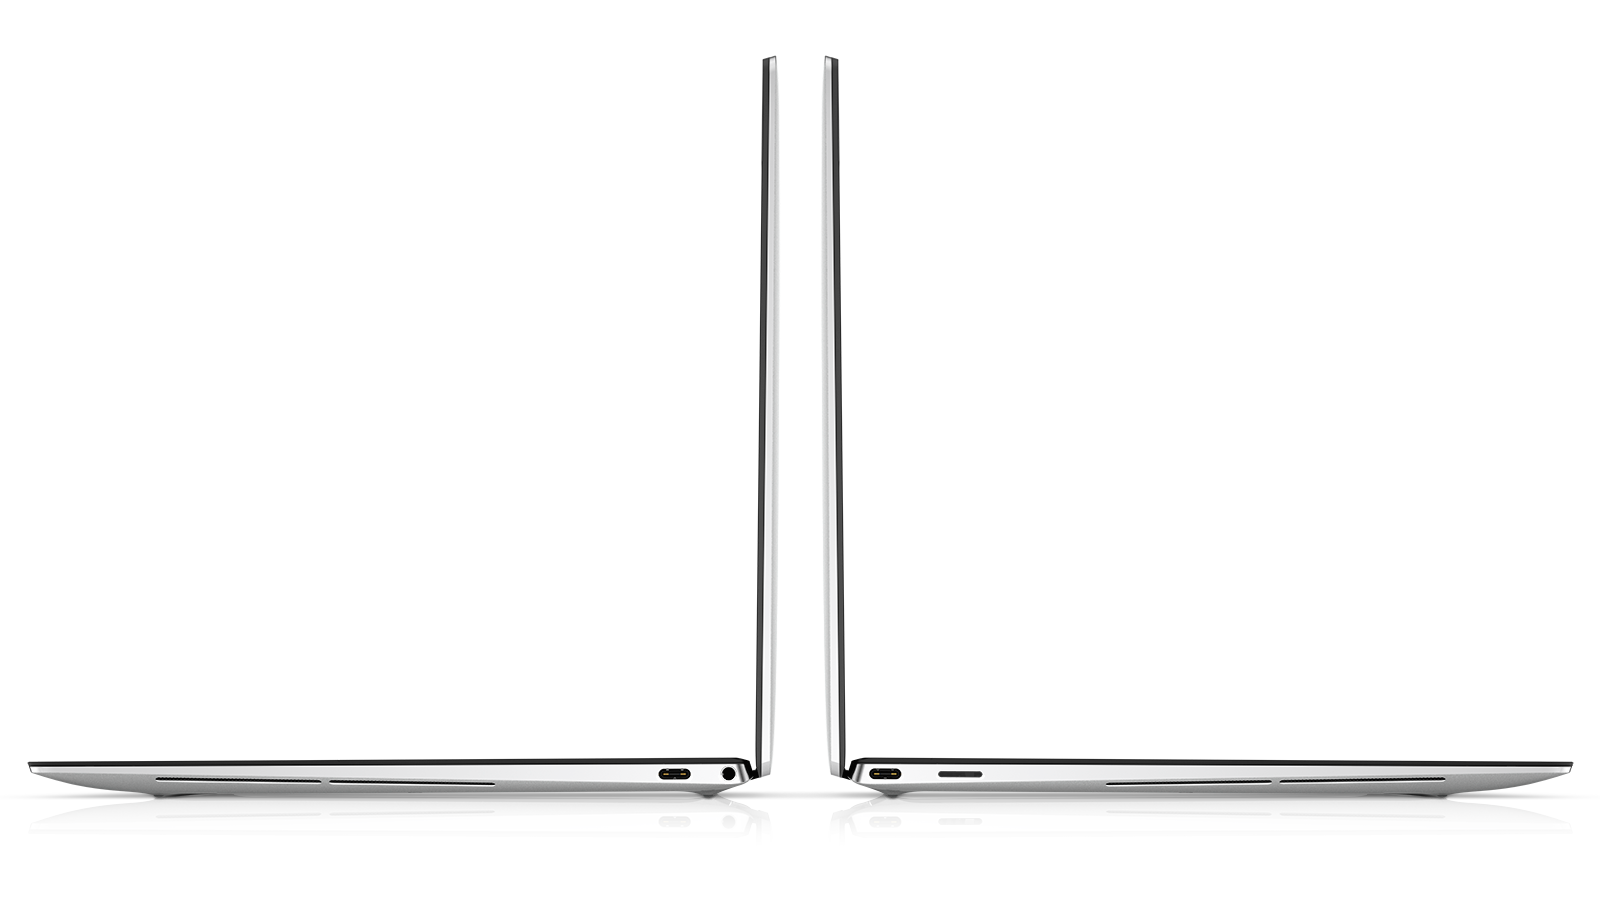 Left-side and right-side view of new Dell XPS 13 laptop, with view of ports and 3.5mm headphone jack